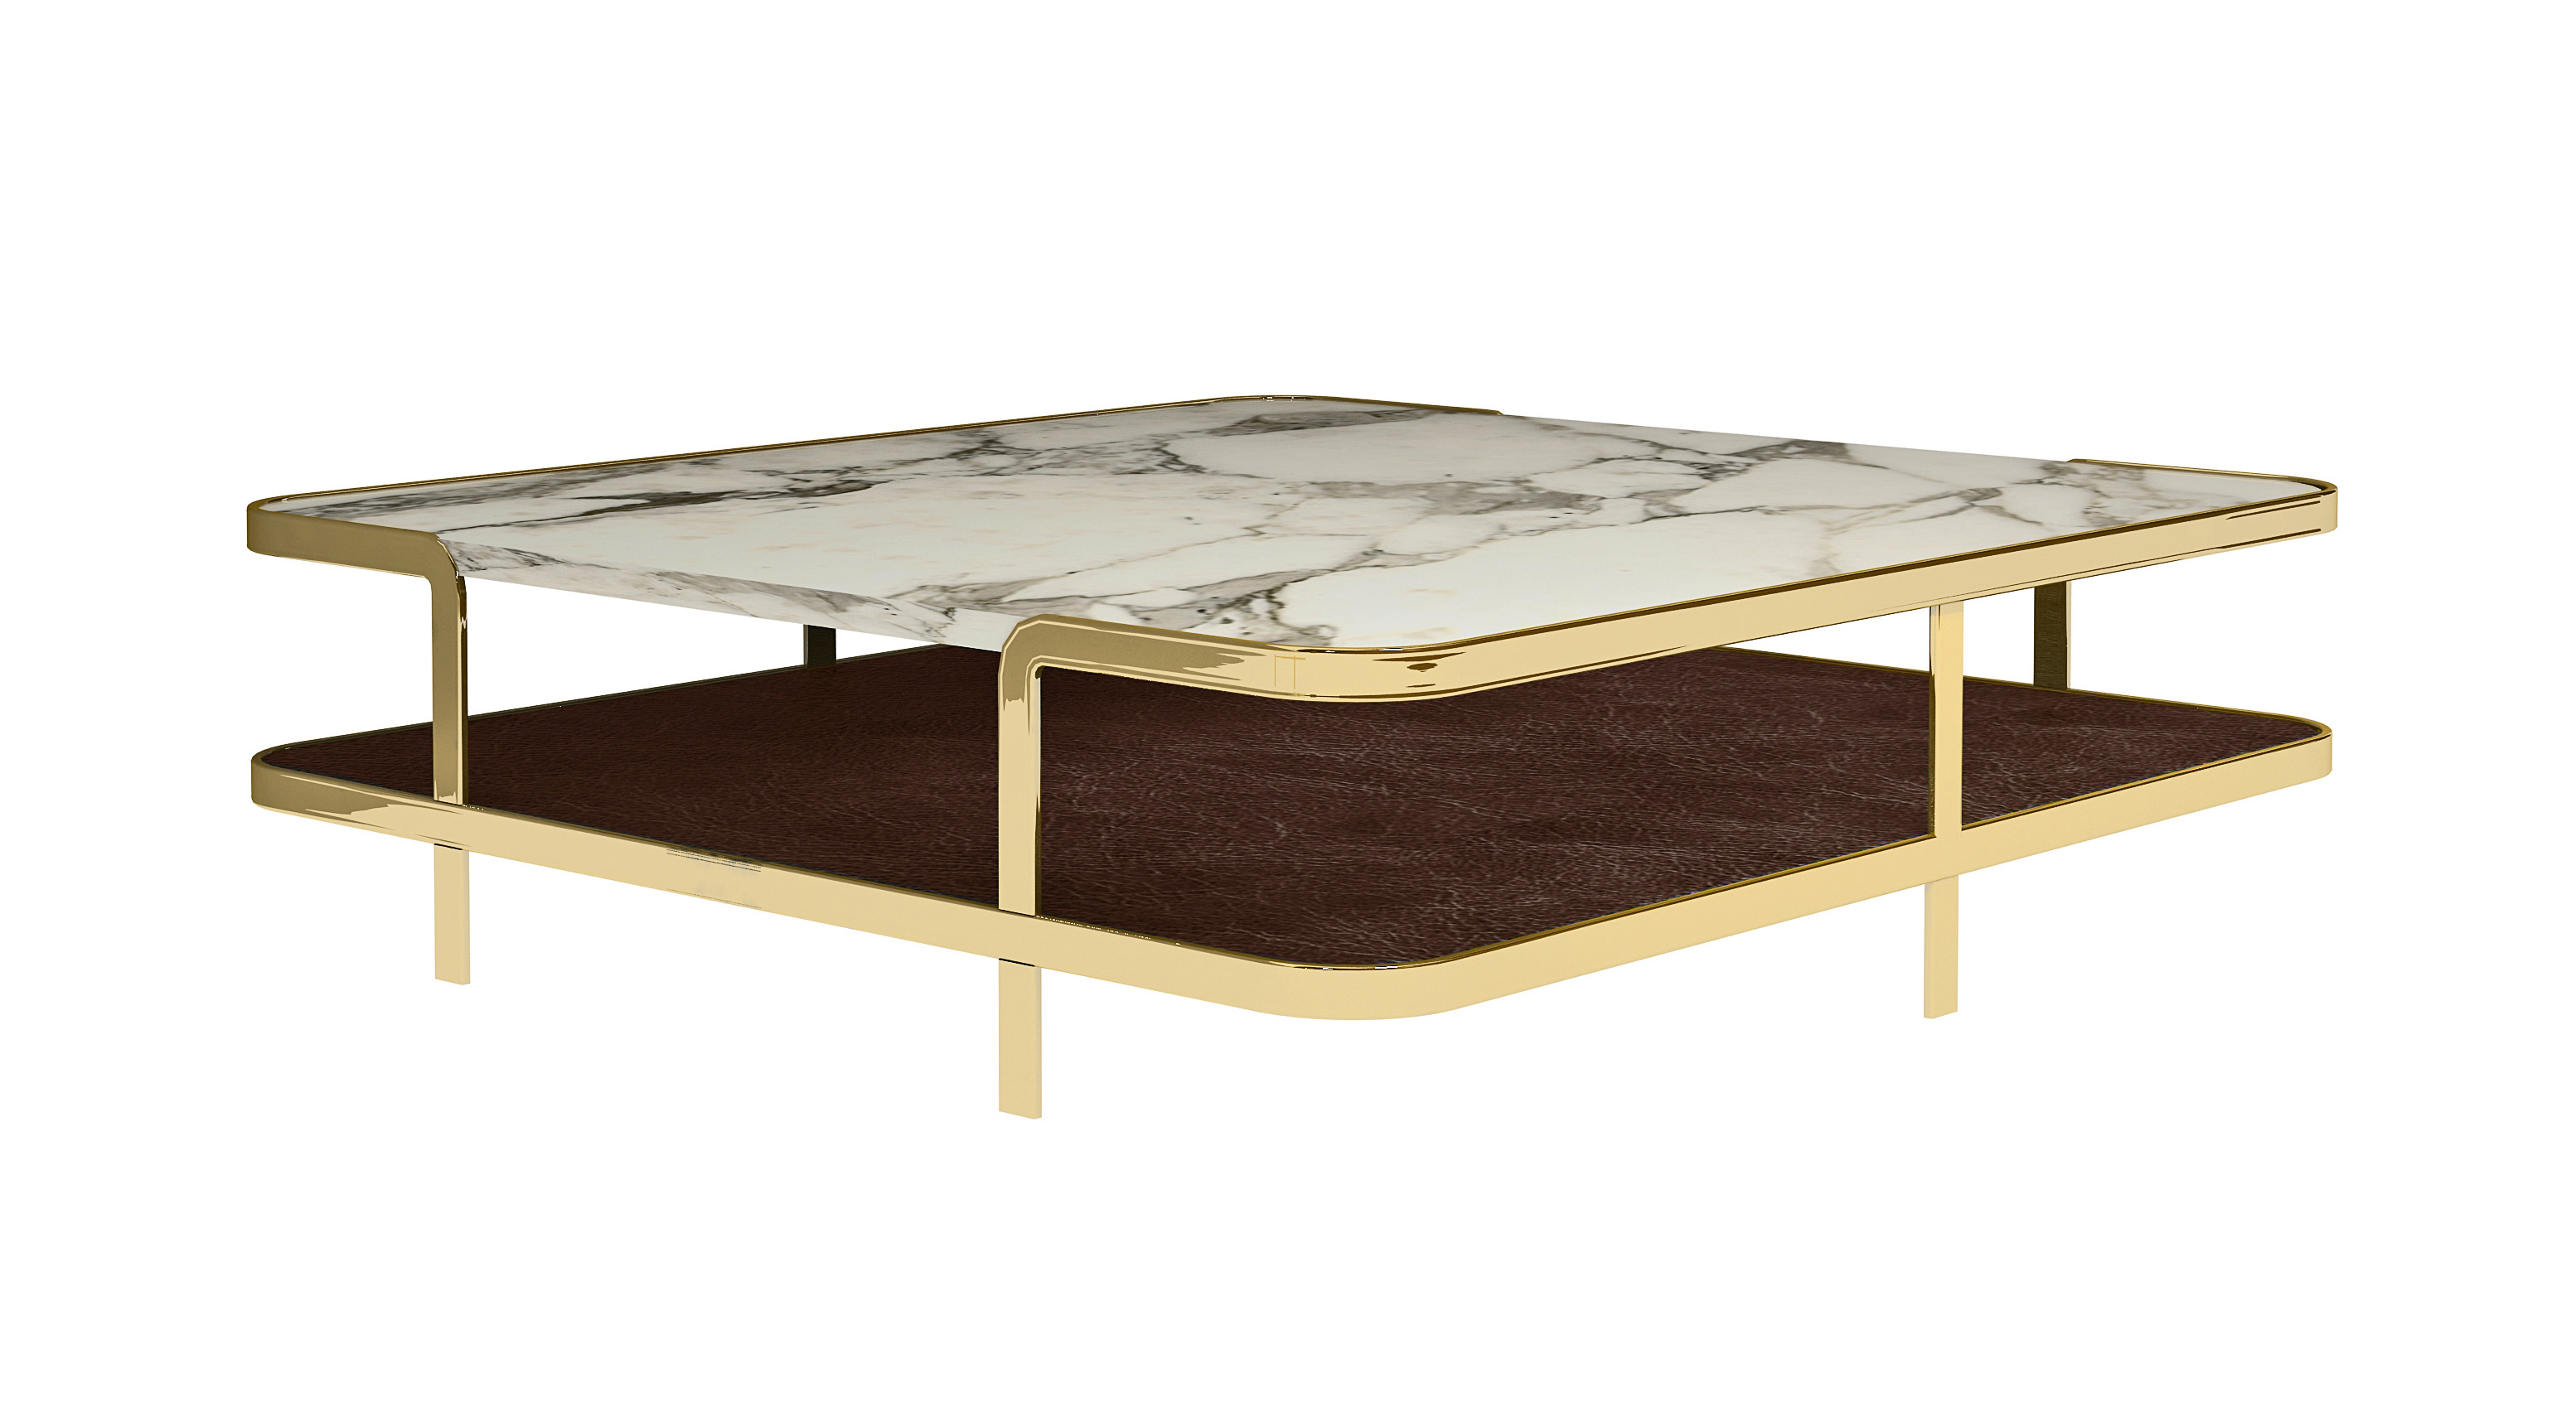 New odilon collection by marco corti anima domus for Table design on mobile